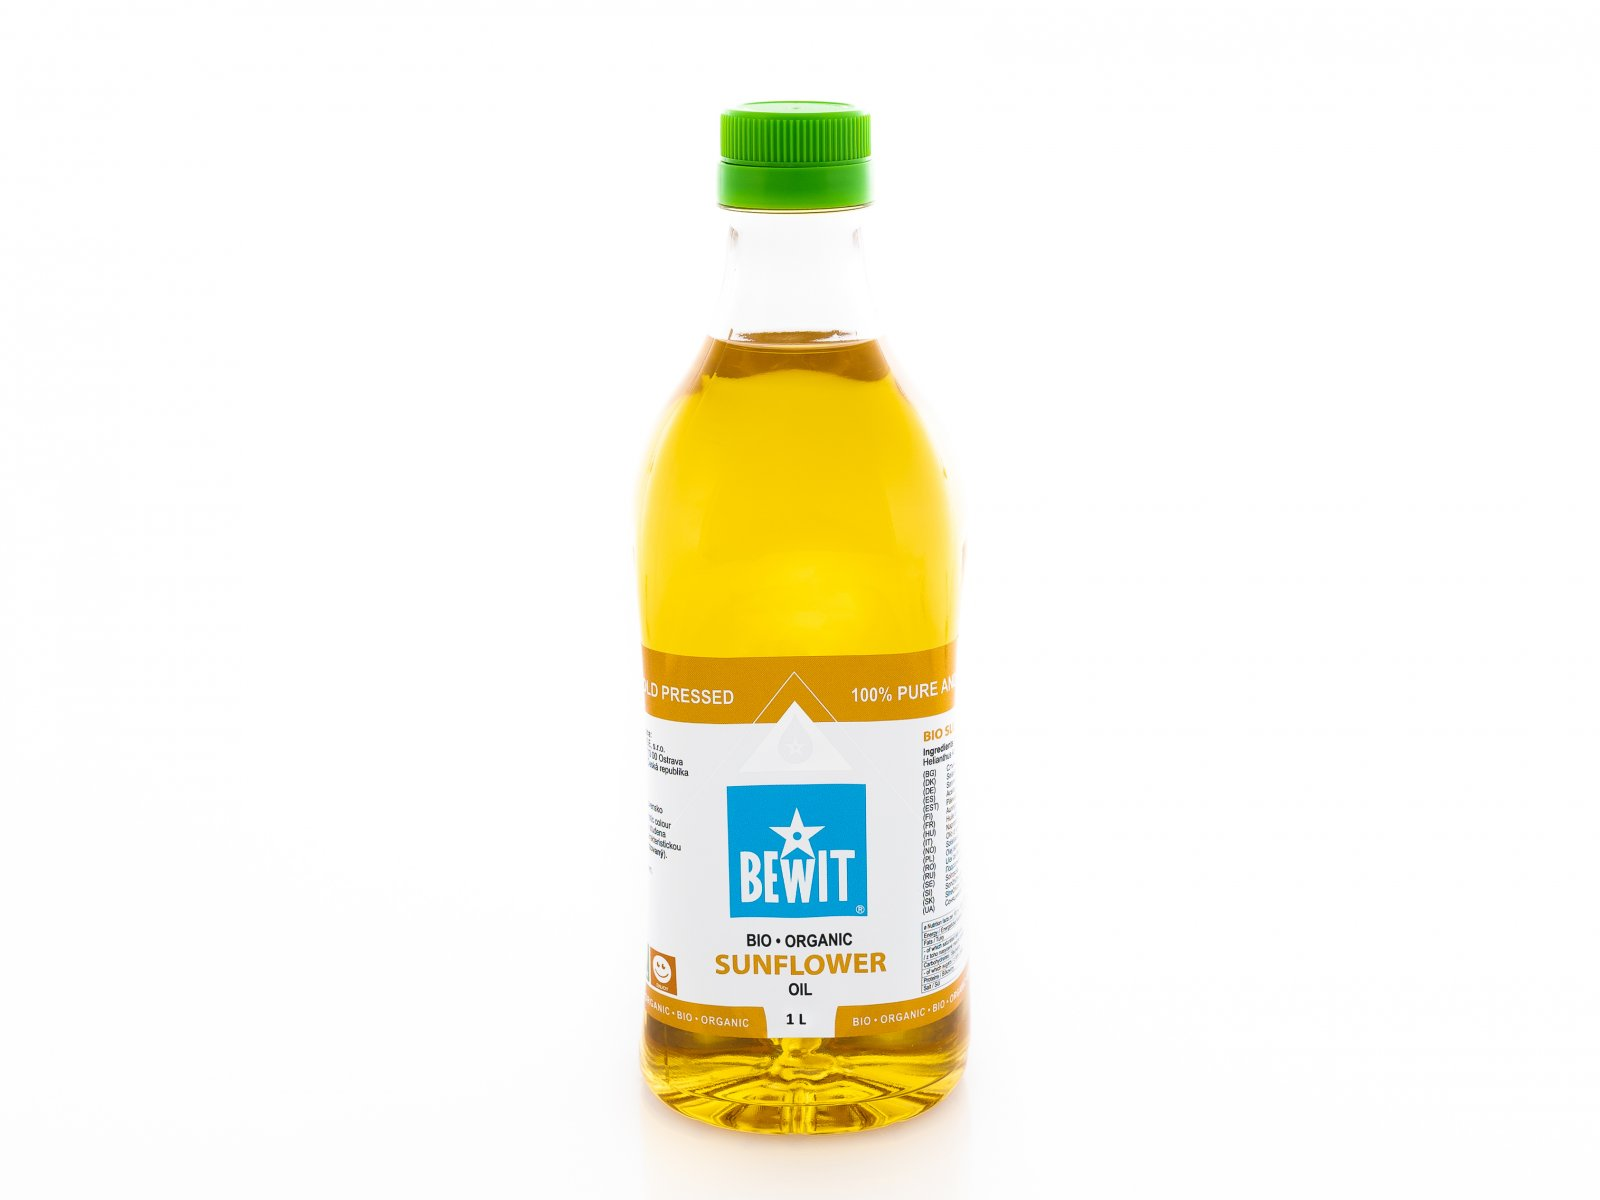 BIO SUNFLOWER OIL, DEODORIZED